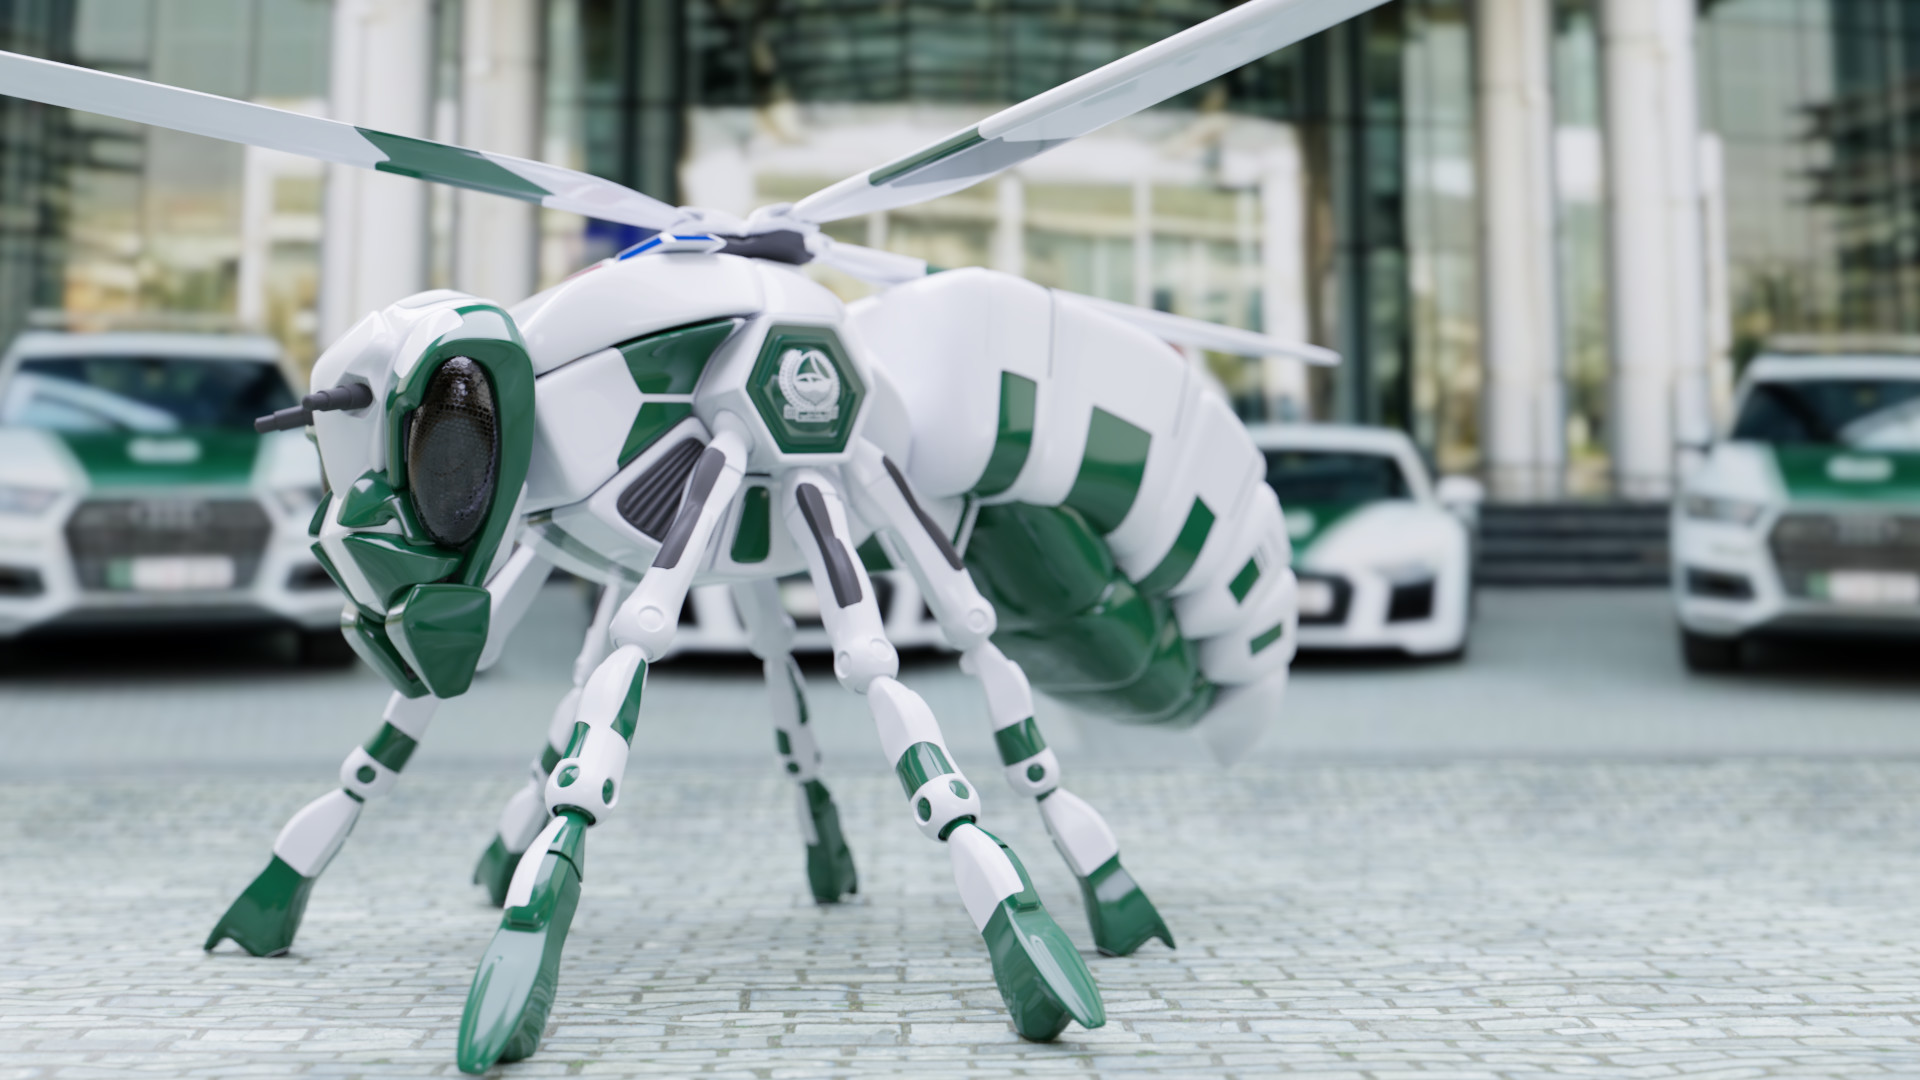 Alexander schmid insect vehicle final